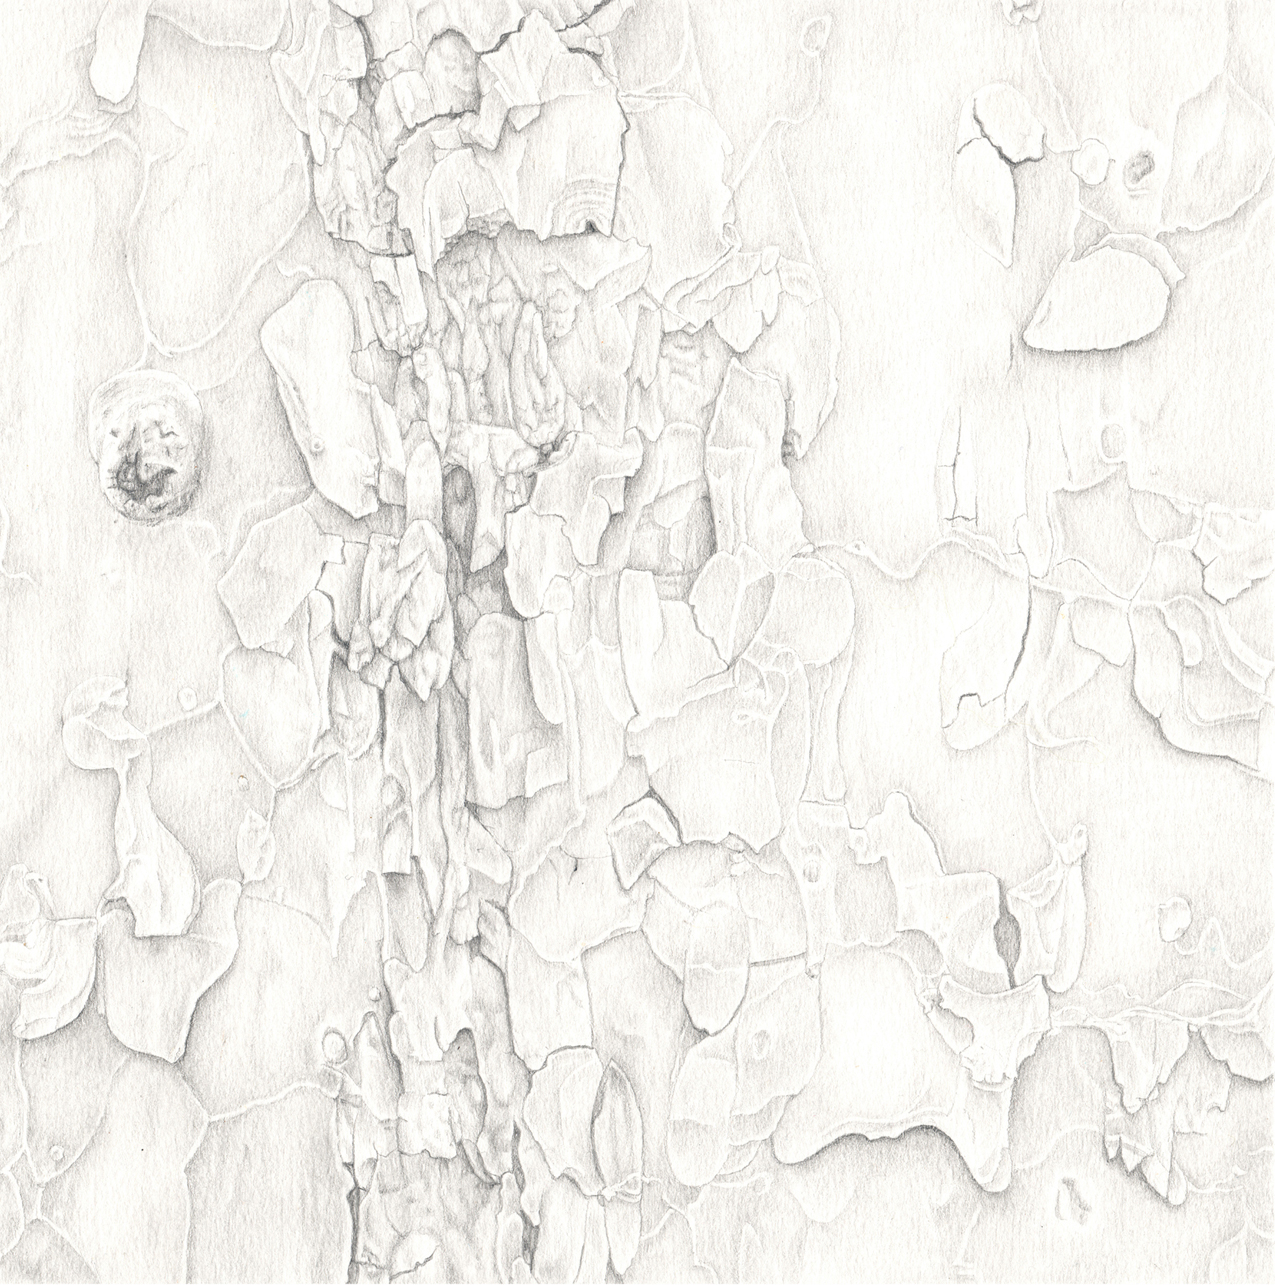 Observational realism, graphite on paper, nature, abstraction